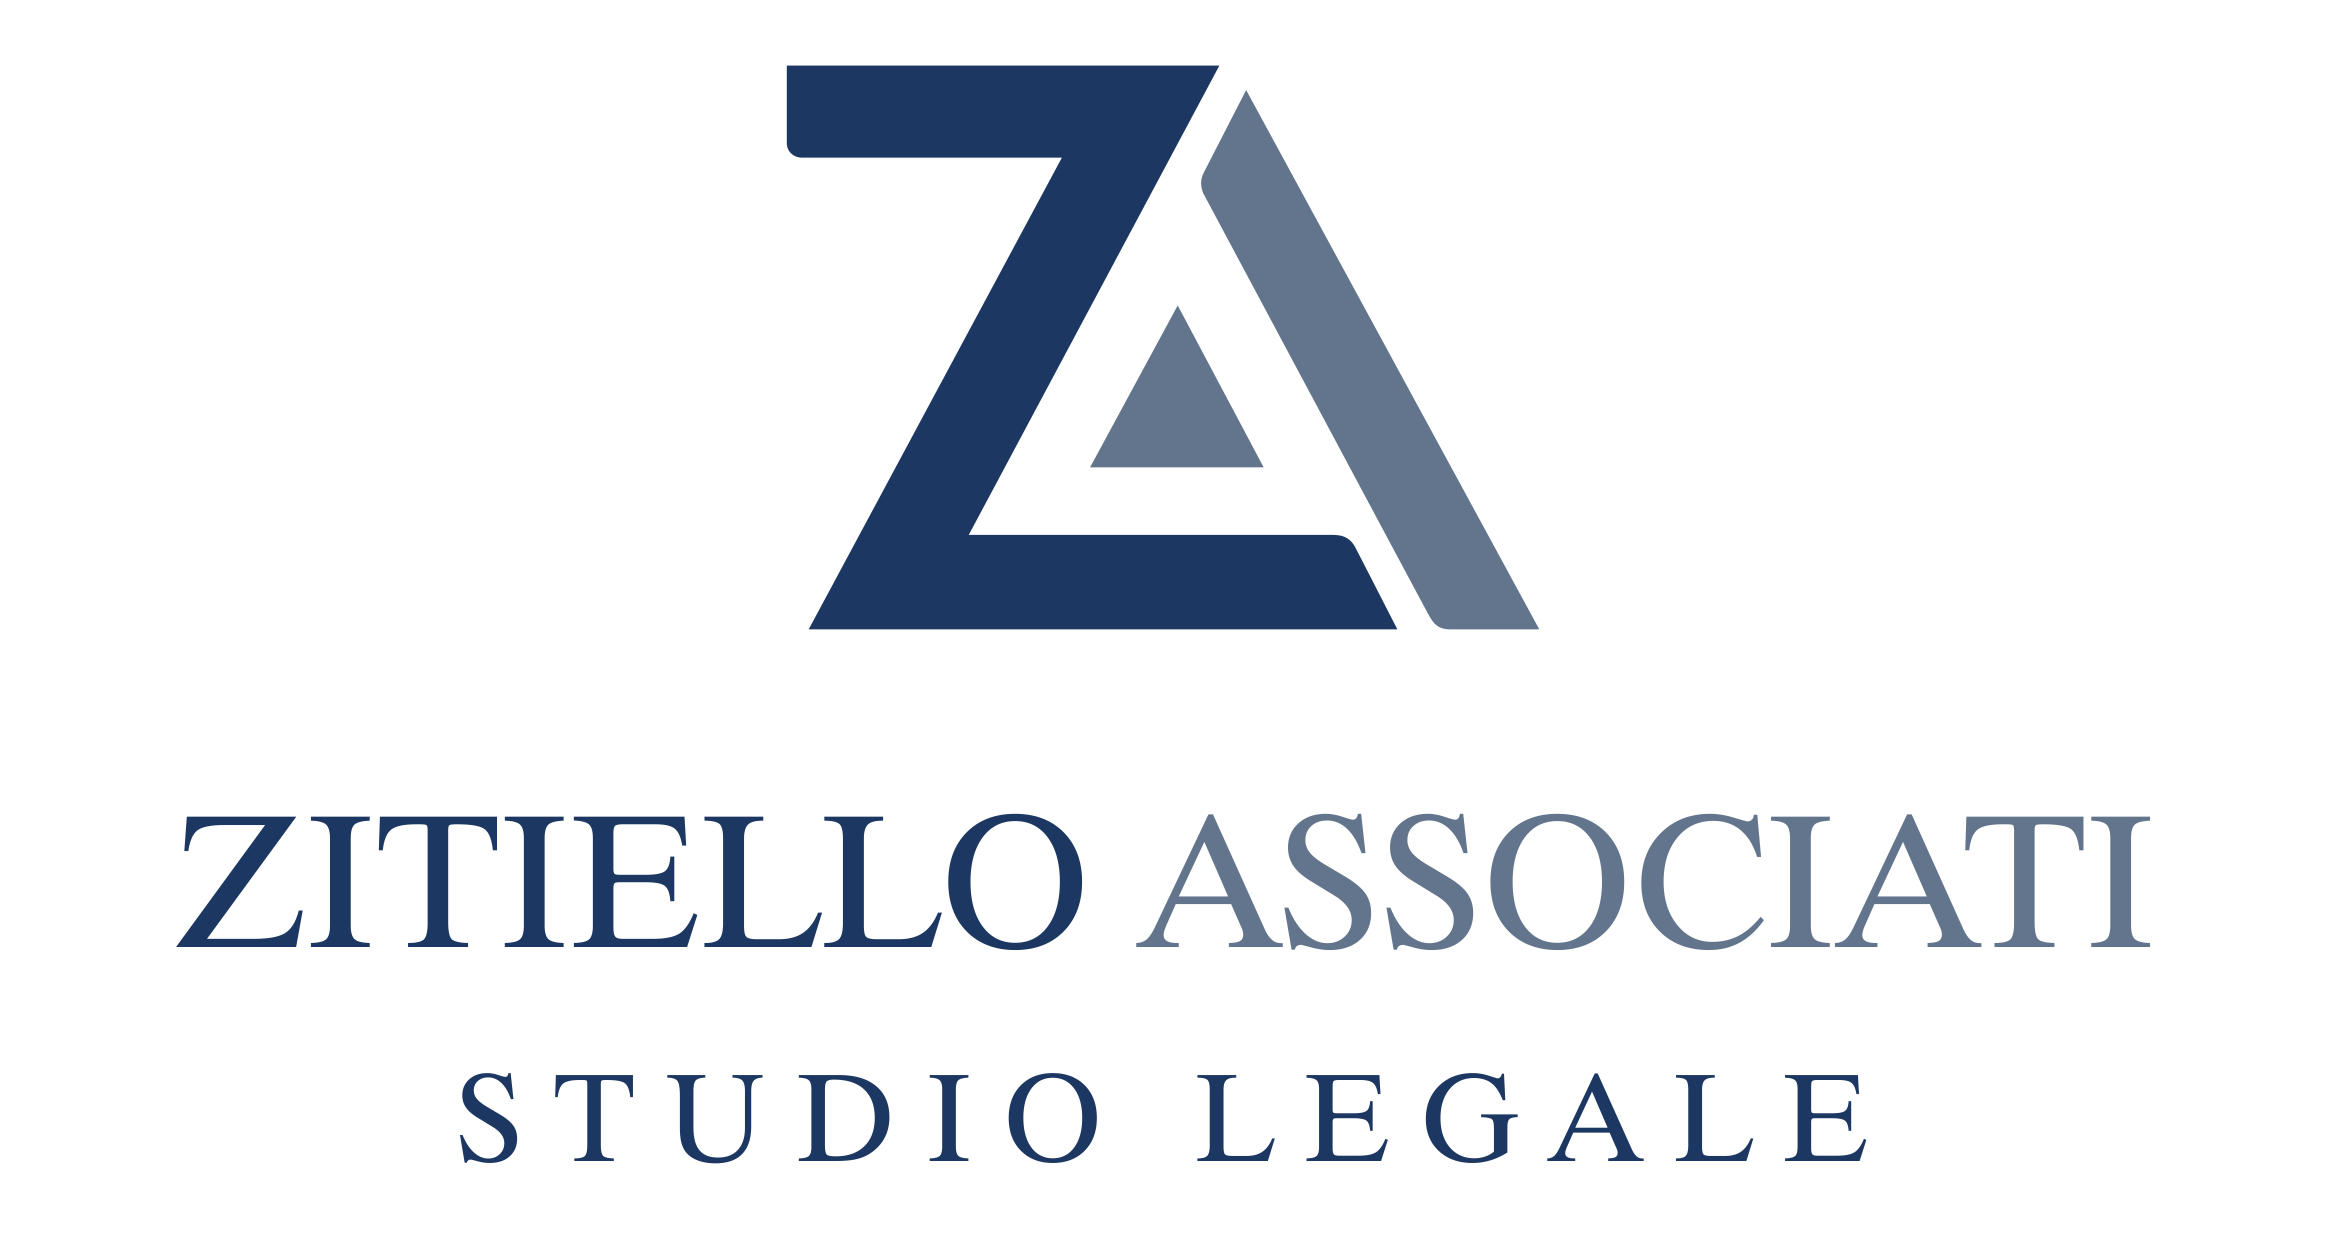 Zitiello Associati logo